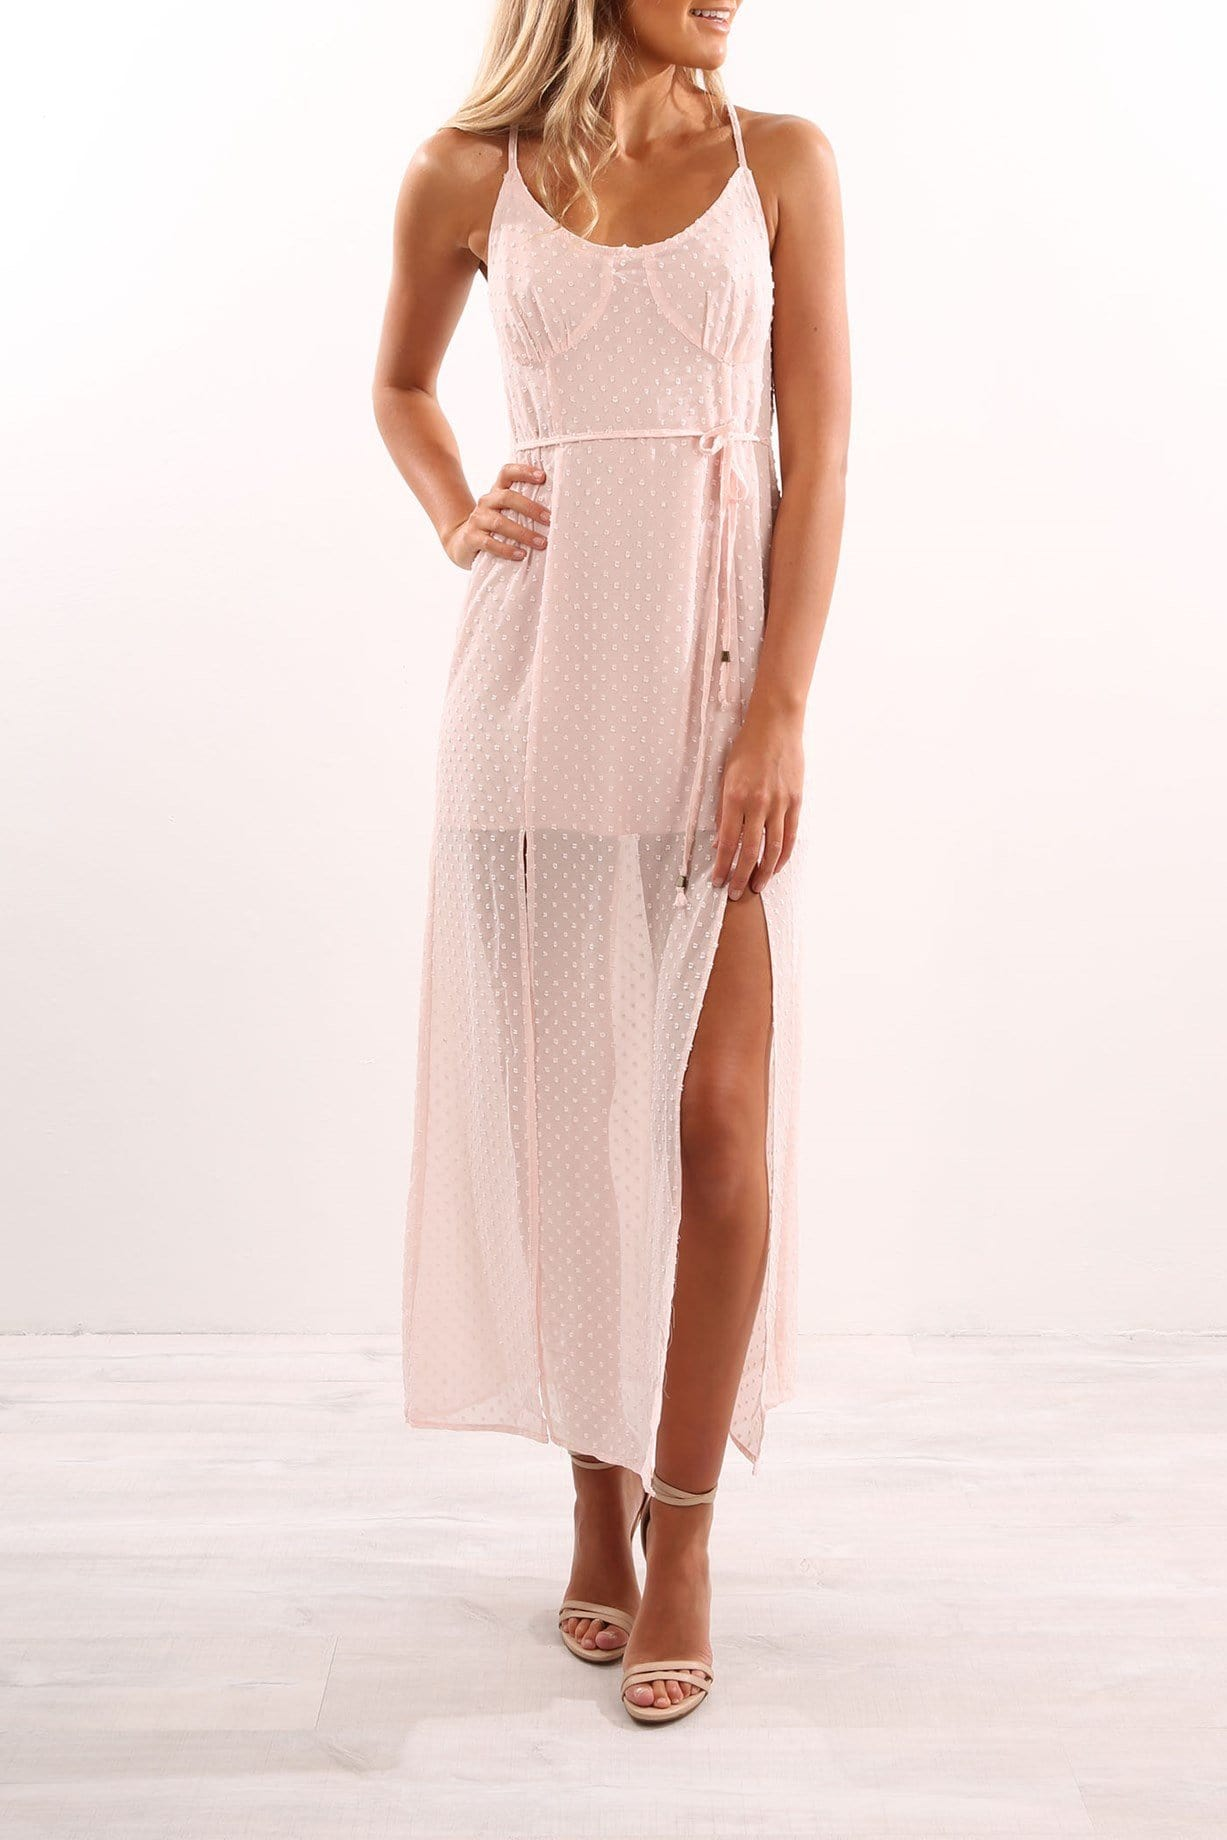 Babydoll Maxi Dress Pink